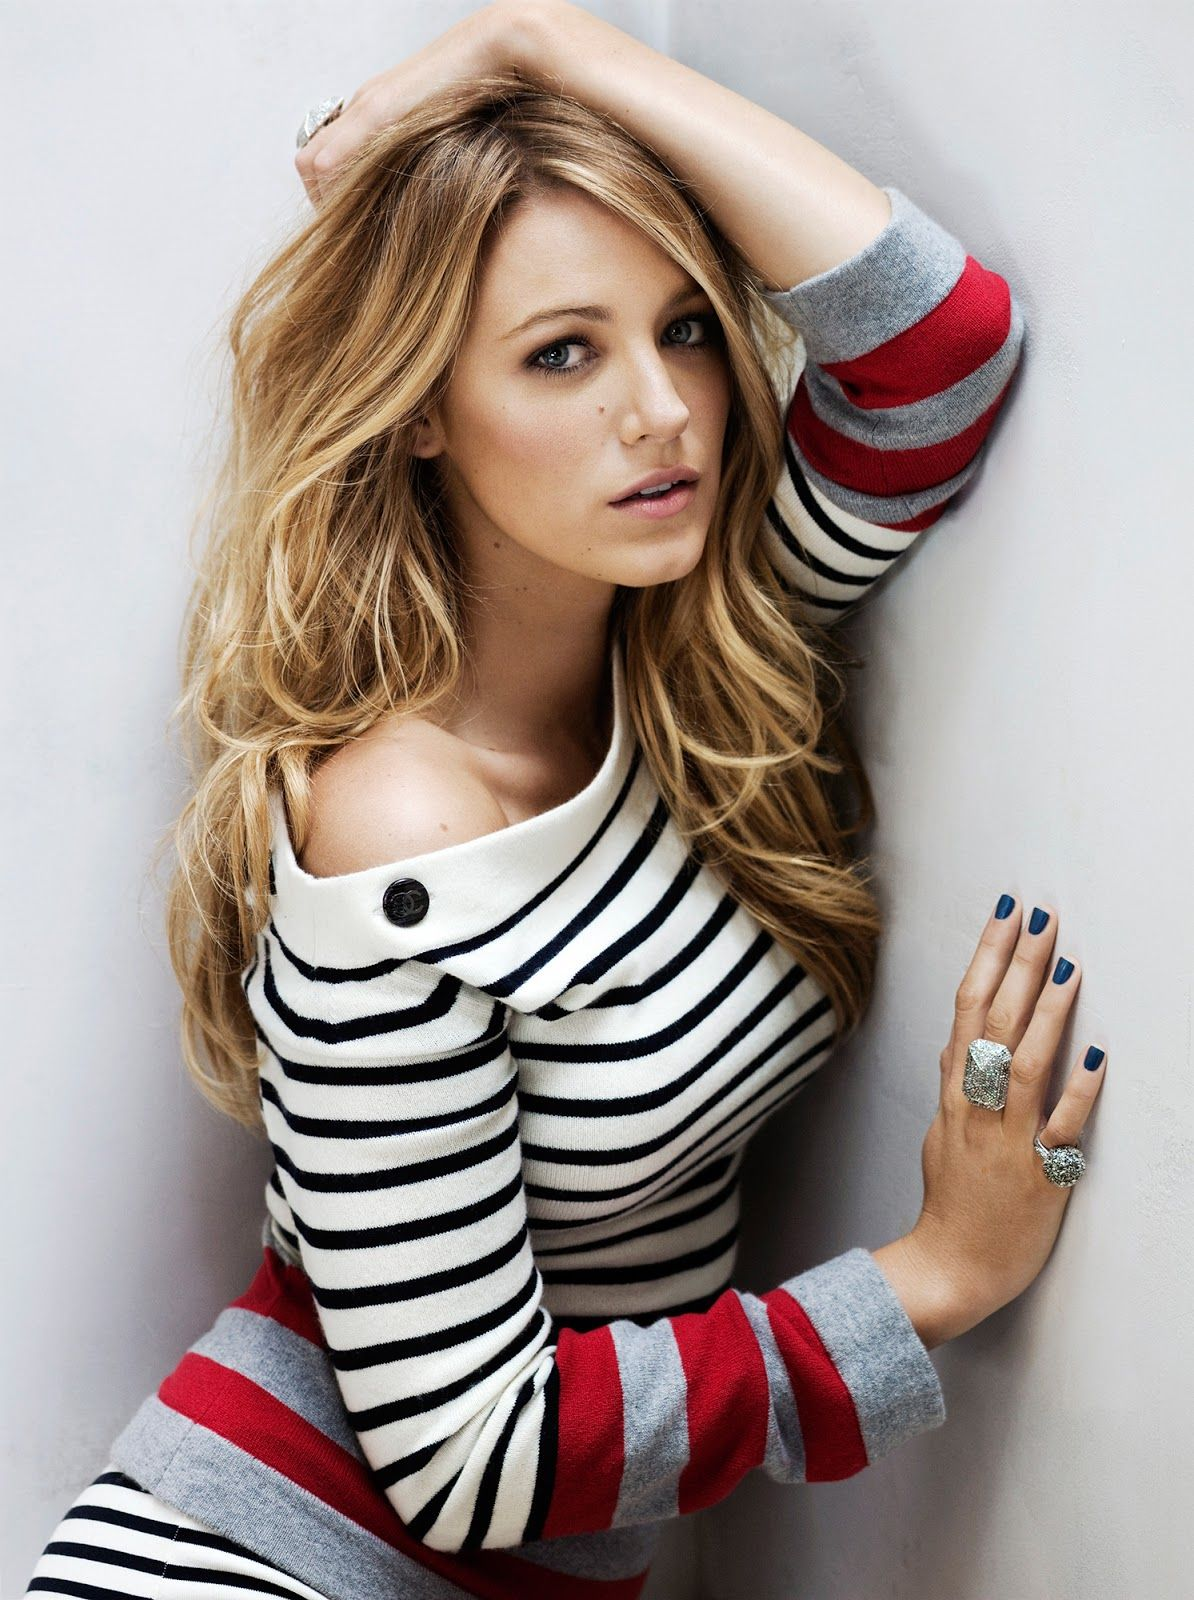 Blake Lively Stylish Photoshoot